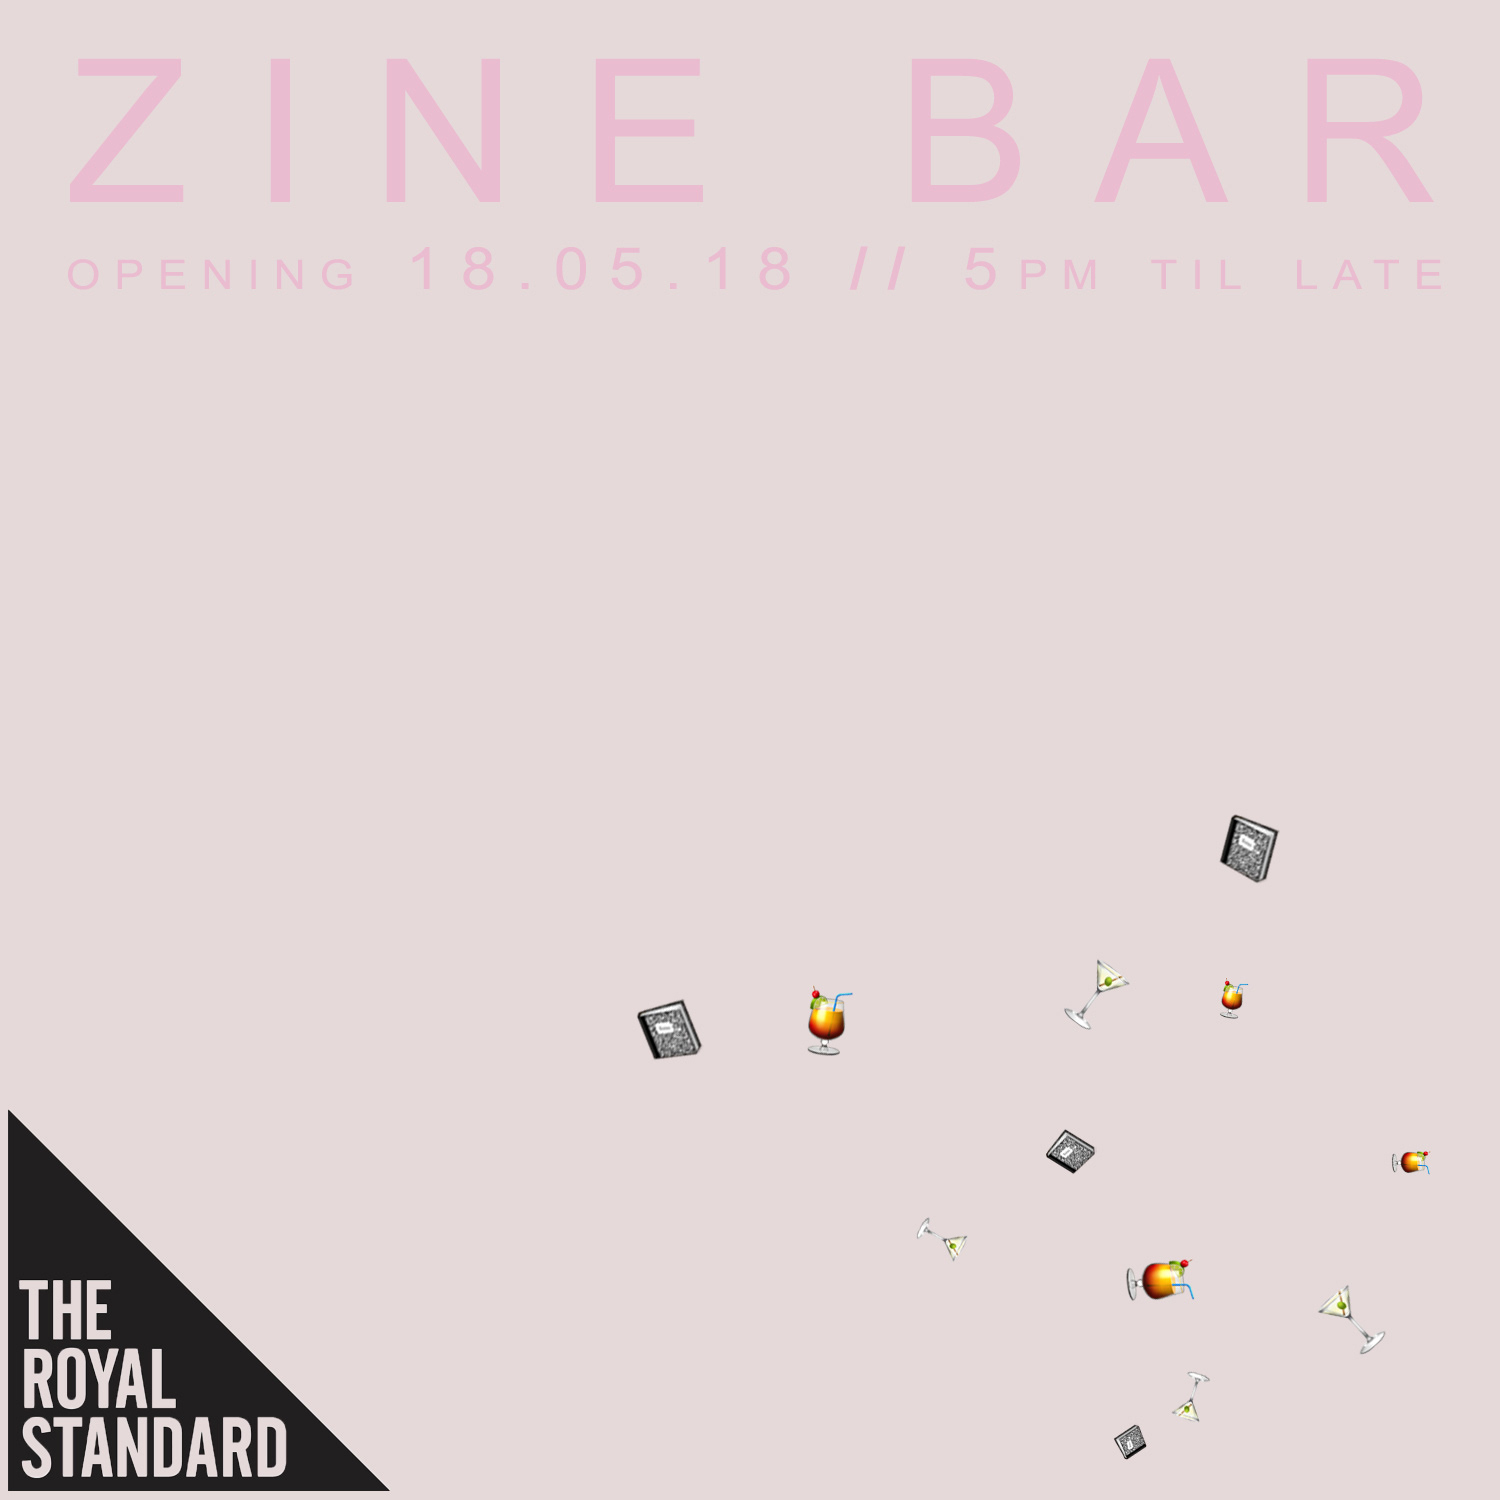 The Royal Standard: The Final Viewing of AND YET IT MOVES, along with Zine Bar